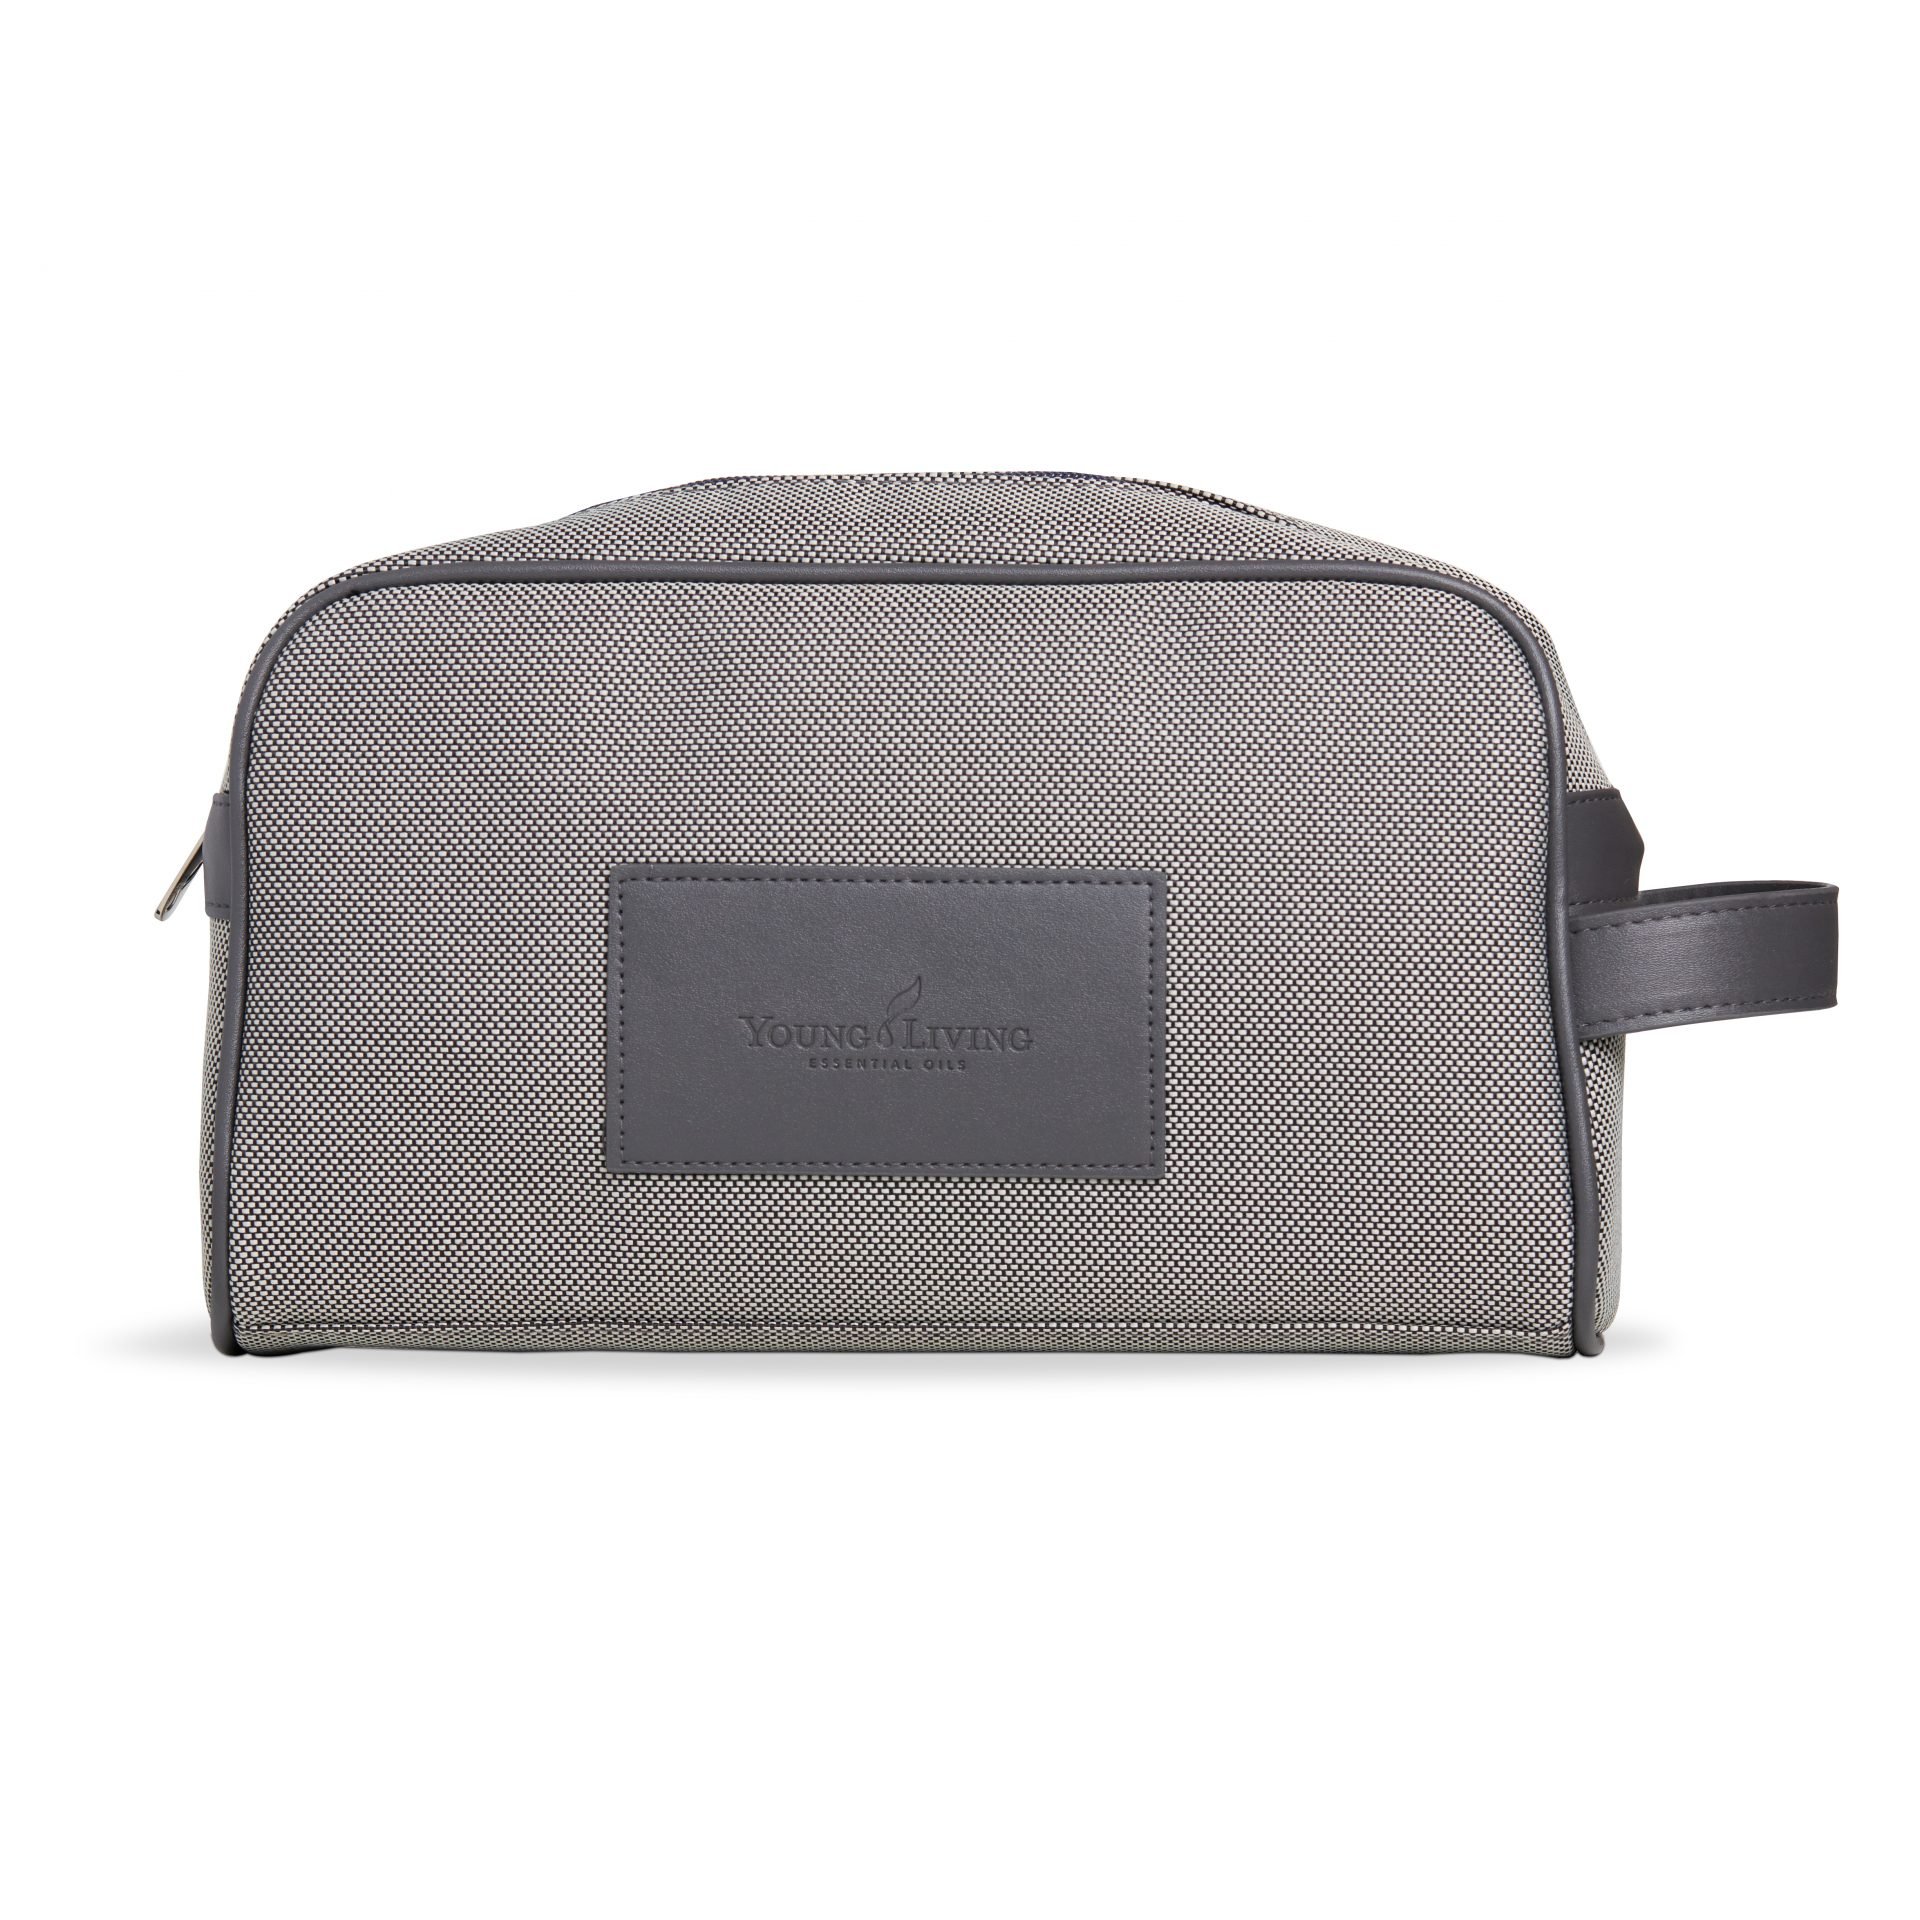 Young Living Gear Mens Toiletry BagHer